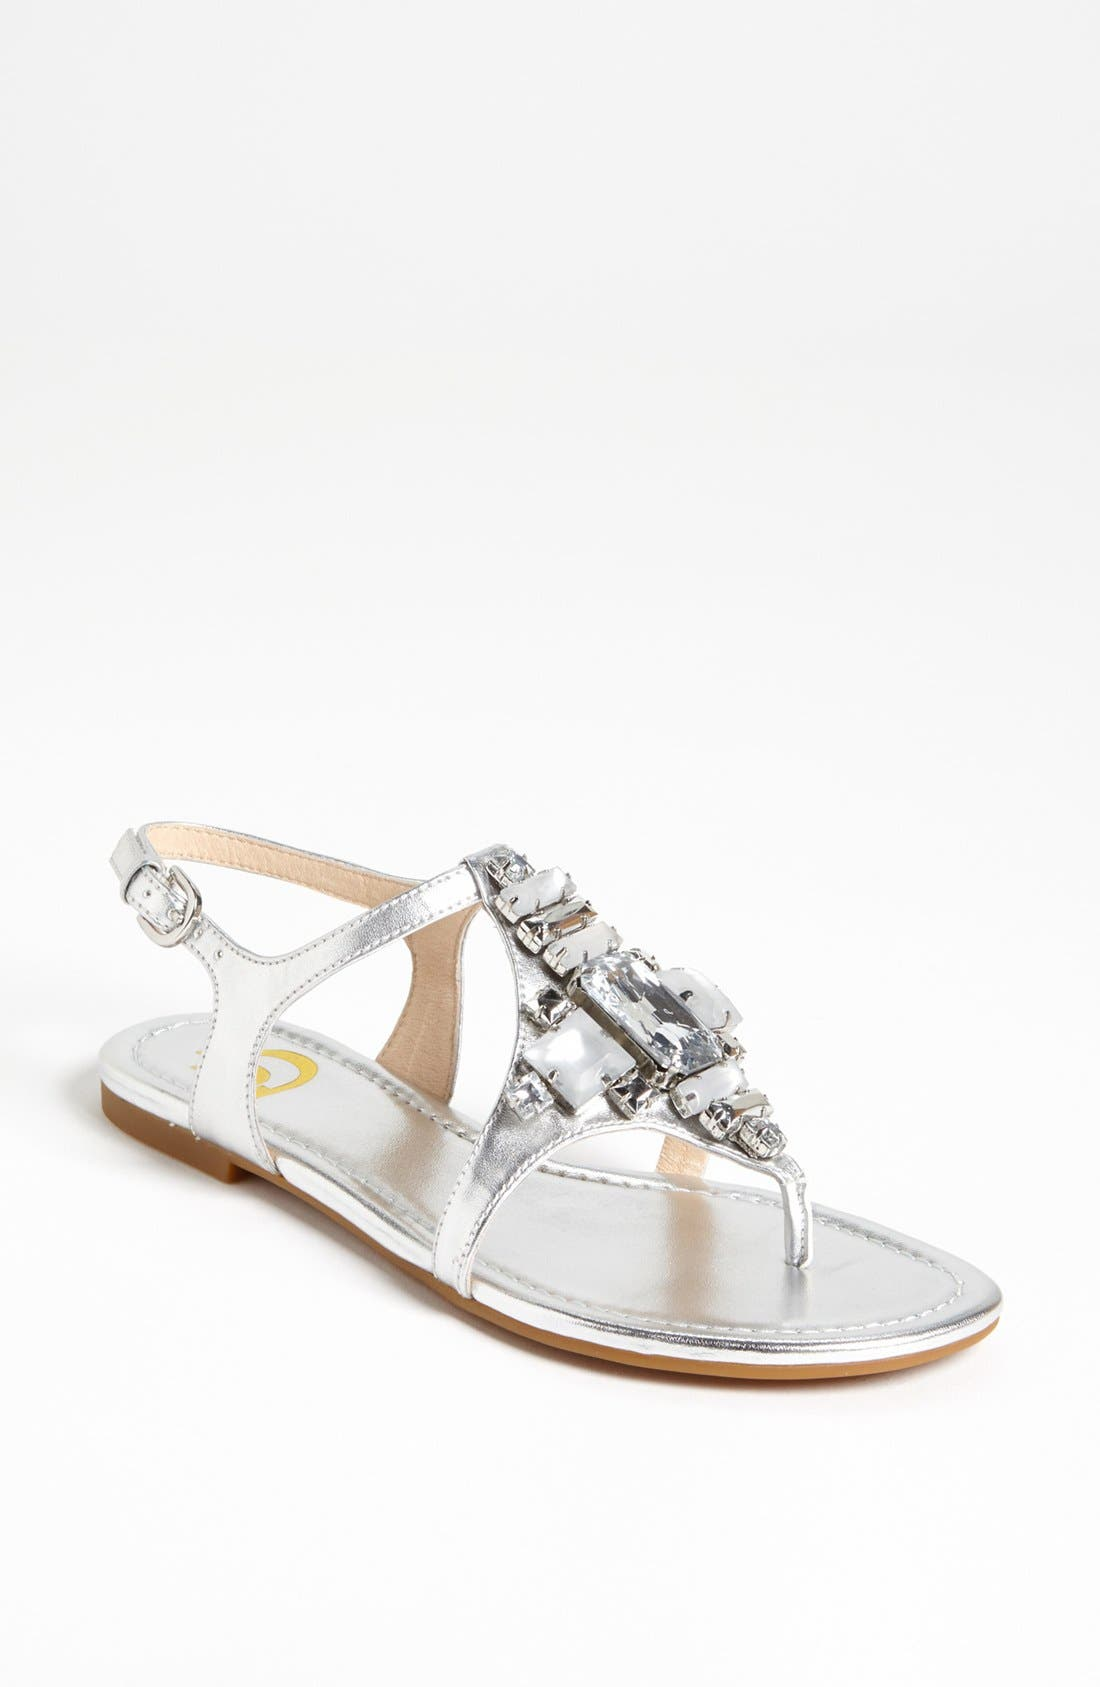 Alternate Image 1 Selected - Joan & David 'Kadison' Sandal (Special Purchase)